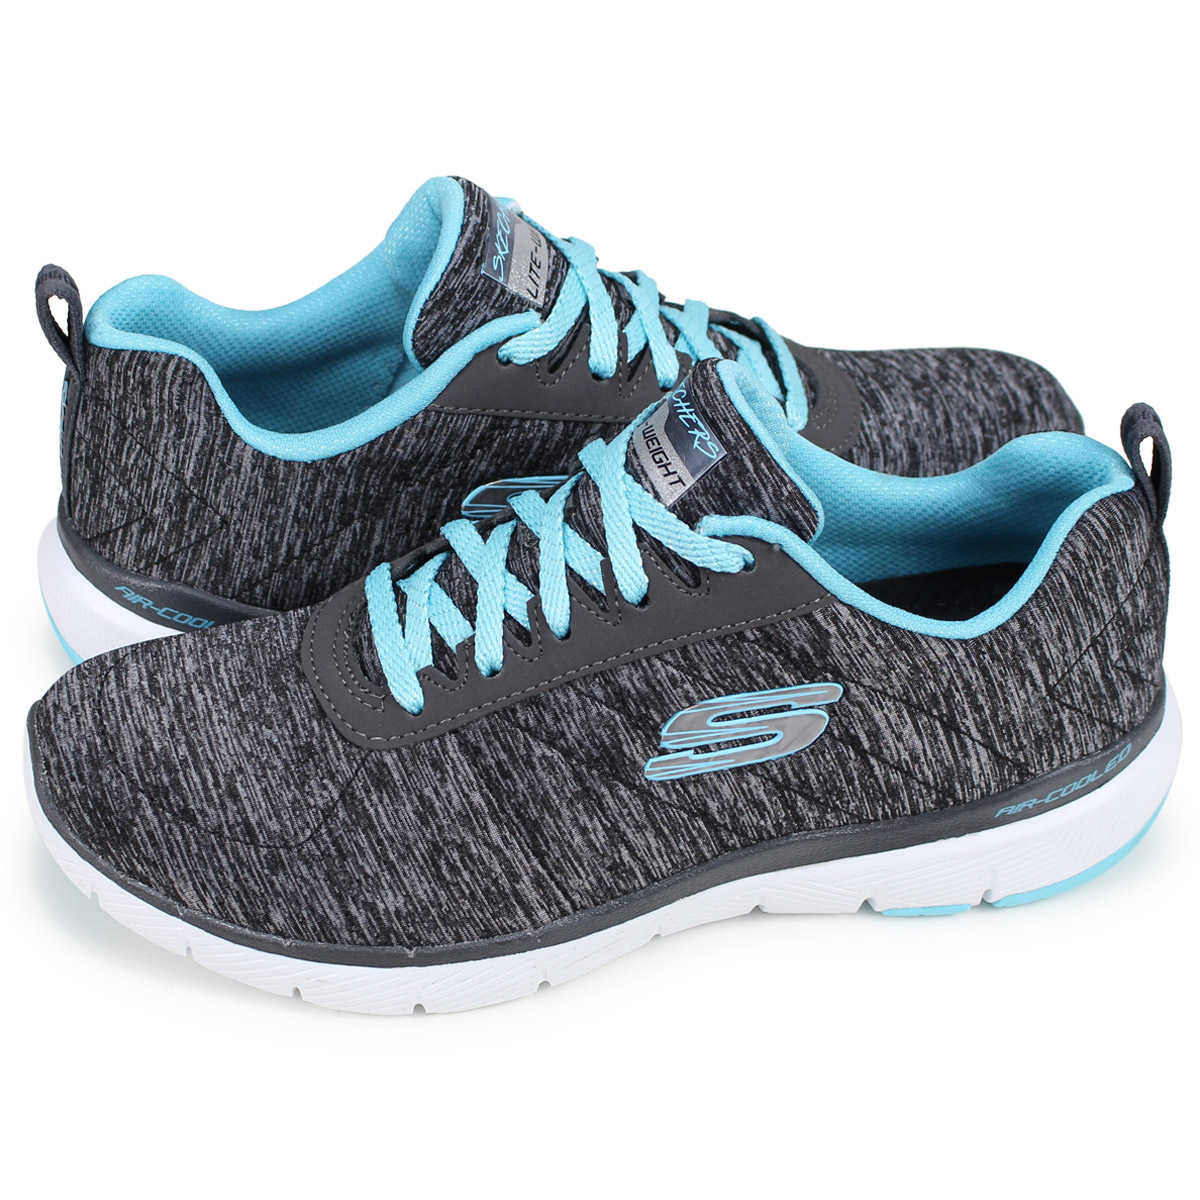 f5939a4a1438 SKECHERS FLEX APPEAL 3.0 INSIDERS スケッチャーズフレックスアピールスニーカーレディースブラック 13067  the  3 19 additional arrival